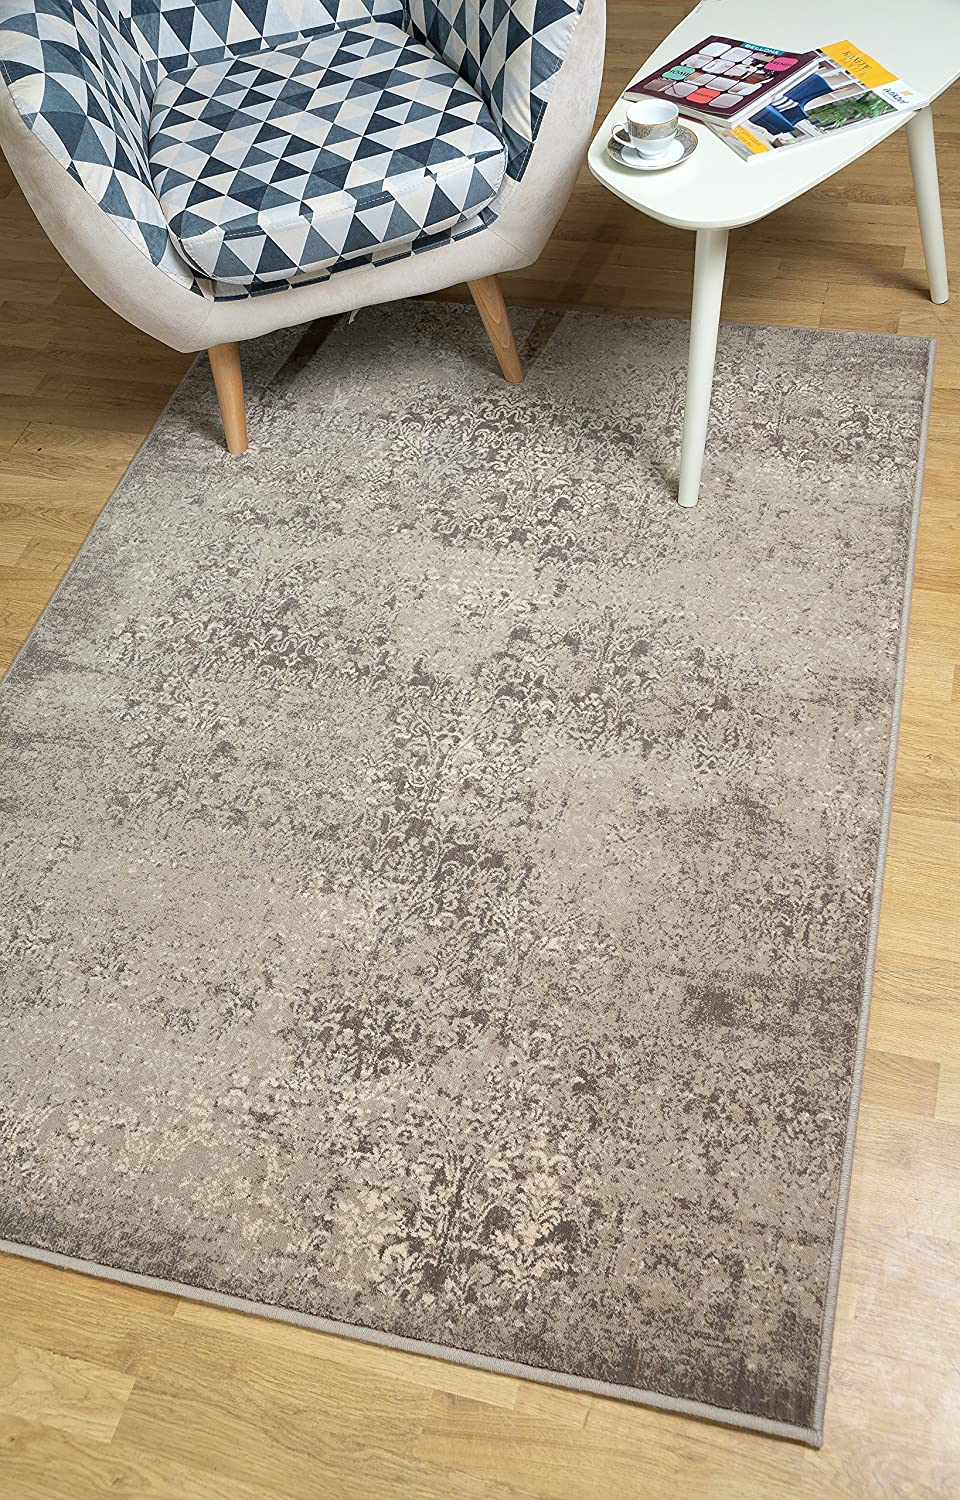 CHEAP /& QUALITY CARPETS FLOW brown Bedroom width 3m 4m 5m Large RUG ANY SIZE